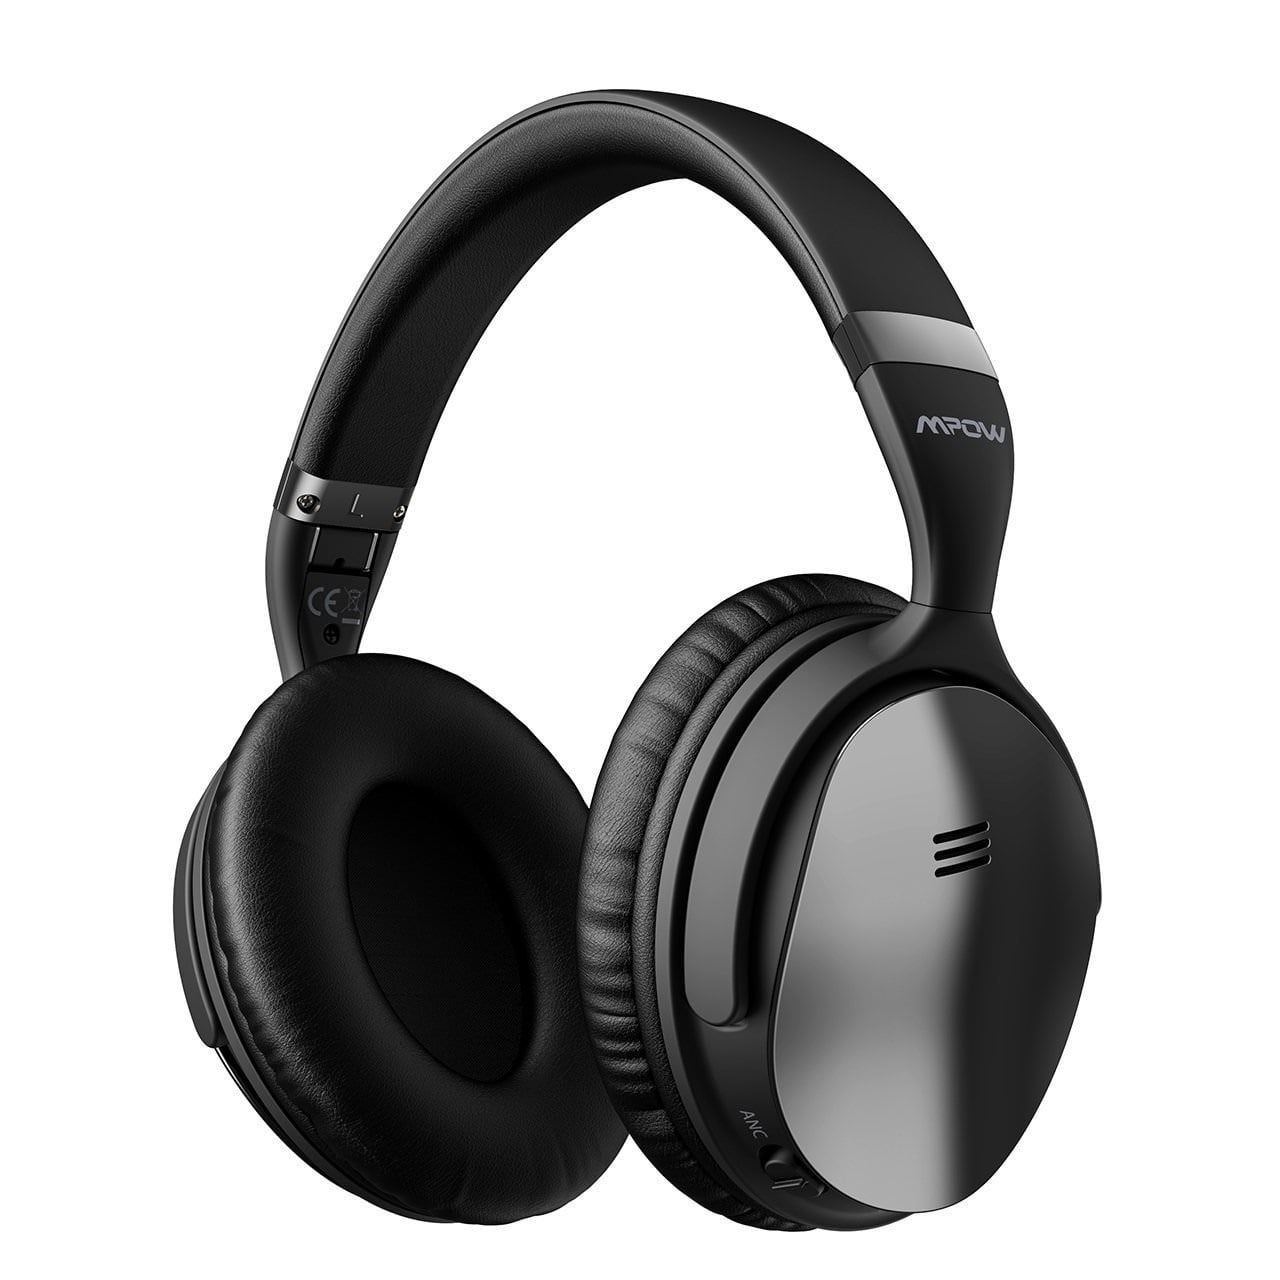 Mpow Foldable Headset Wireless Headphones Bluetooth Headset With Mic For Pc Cell Phones Tv Best Noise Cancelling Headphones Headphones Noise Cancelling Headphones